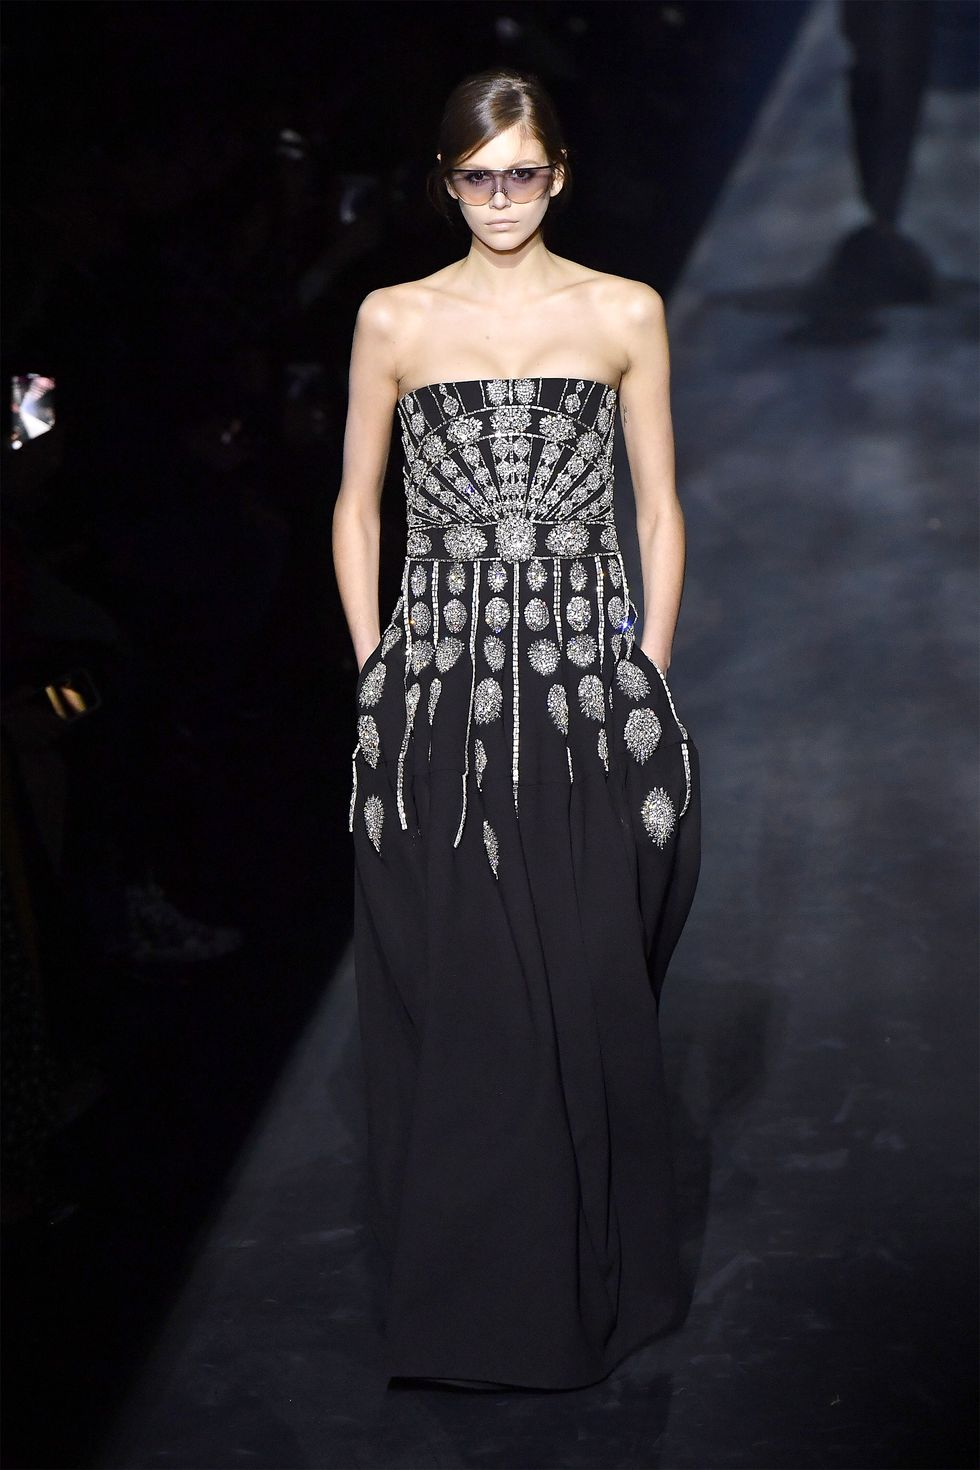 This is the elegant Givenchy dress.